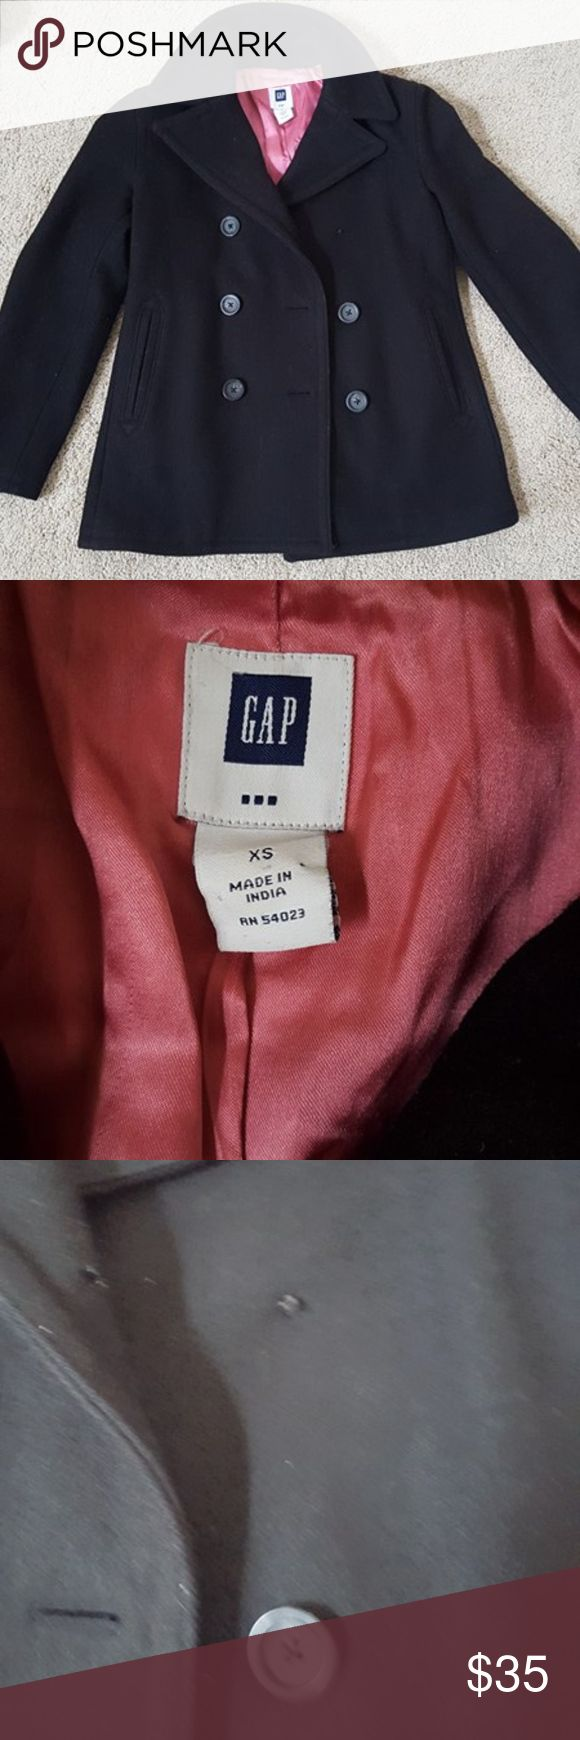 GAP Jacket Was given to me as a gift when I was younger. The dry cleaners lost a button on it. Gently used and very warm. I have out grown that jacket, other wish I'd keep it. GAP Jackets & Coats Trench Coats